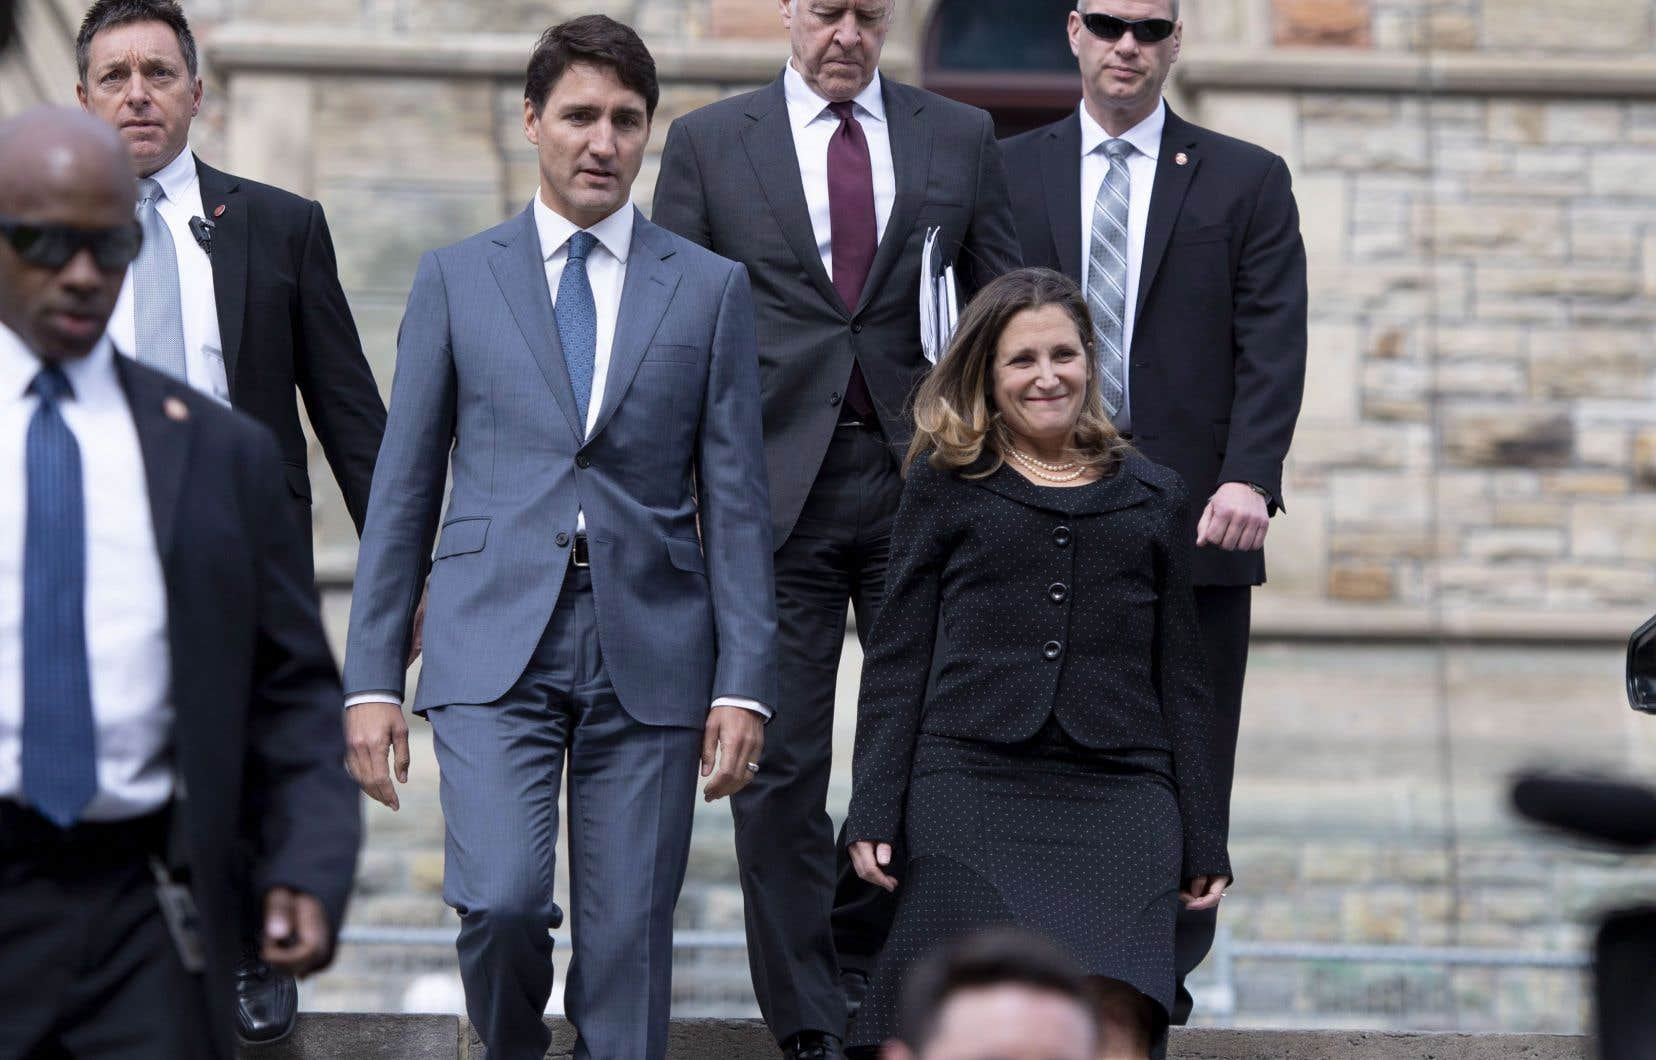 Le premier ministre canadien Justin Trudeau et la ministre du Commerce international Chrystia Freeland